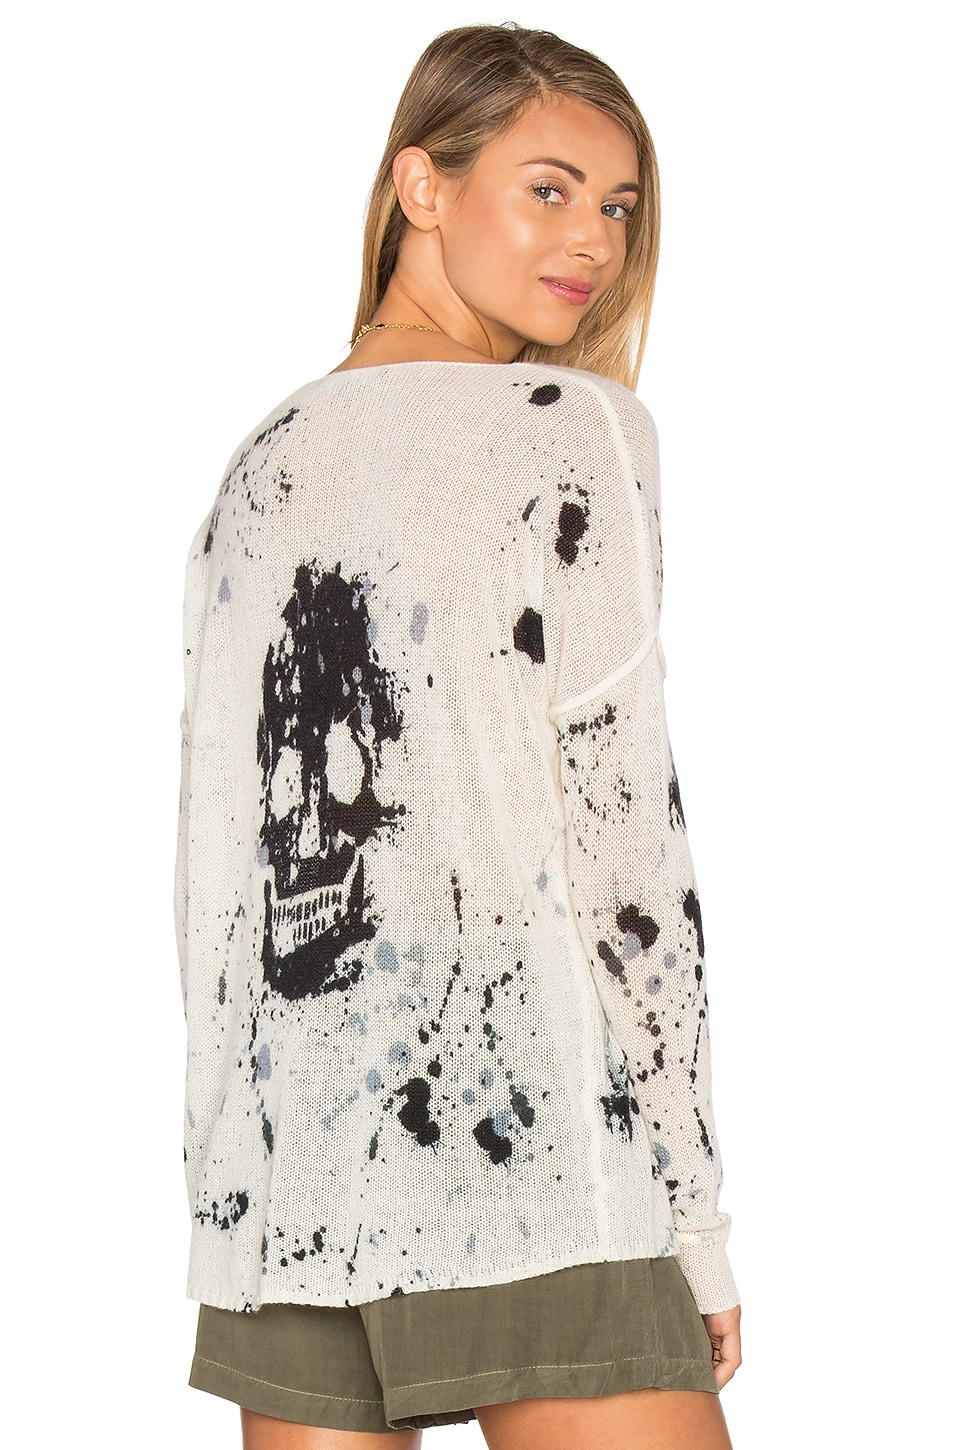 360CASHMERE Spark Cashmere Skull Sweater in Multi